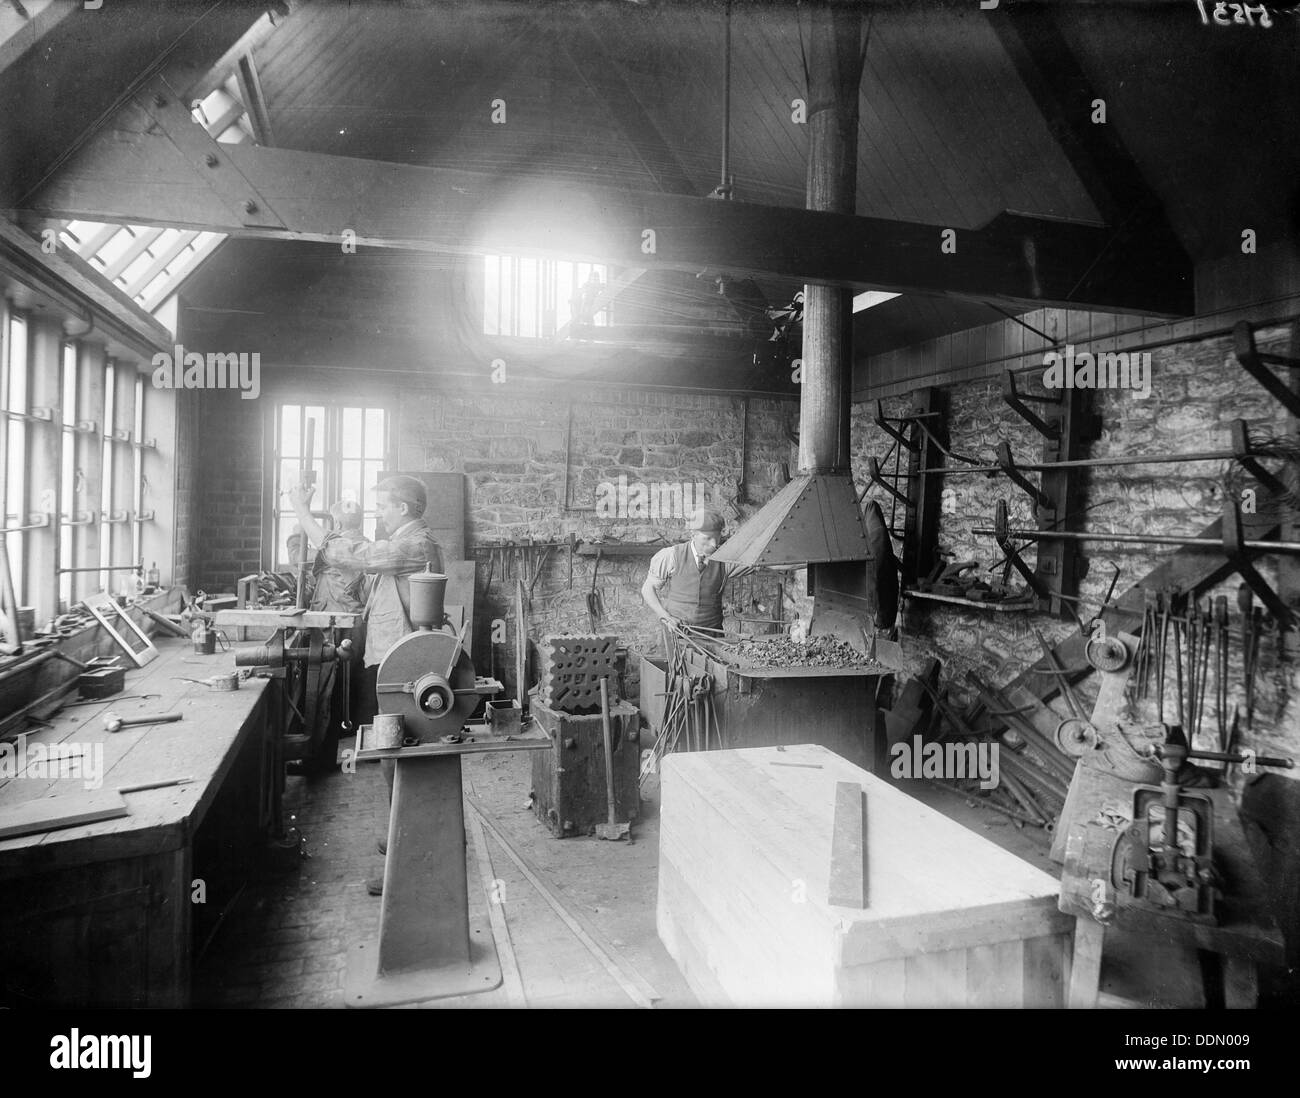 Interior of a workshop with a furnace, Oxford, Oxfordshire, c1860-c1922. Artist: Henry Taunt - Stock Image